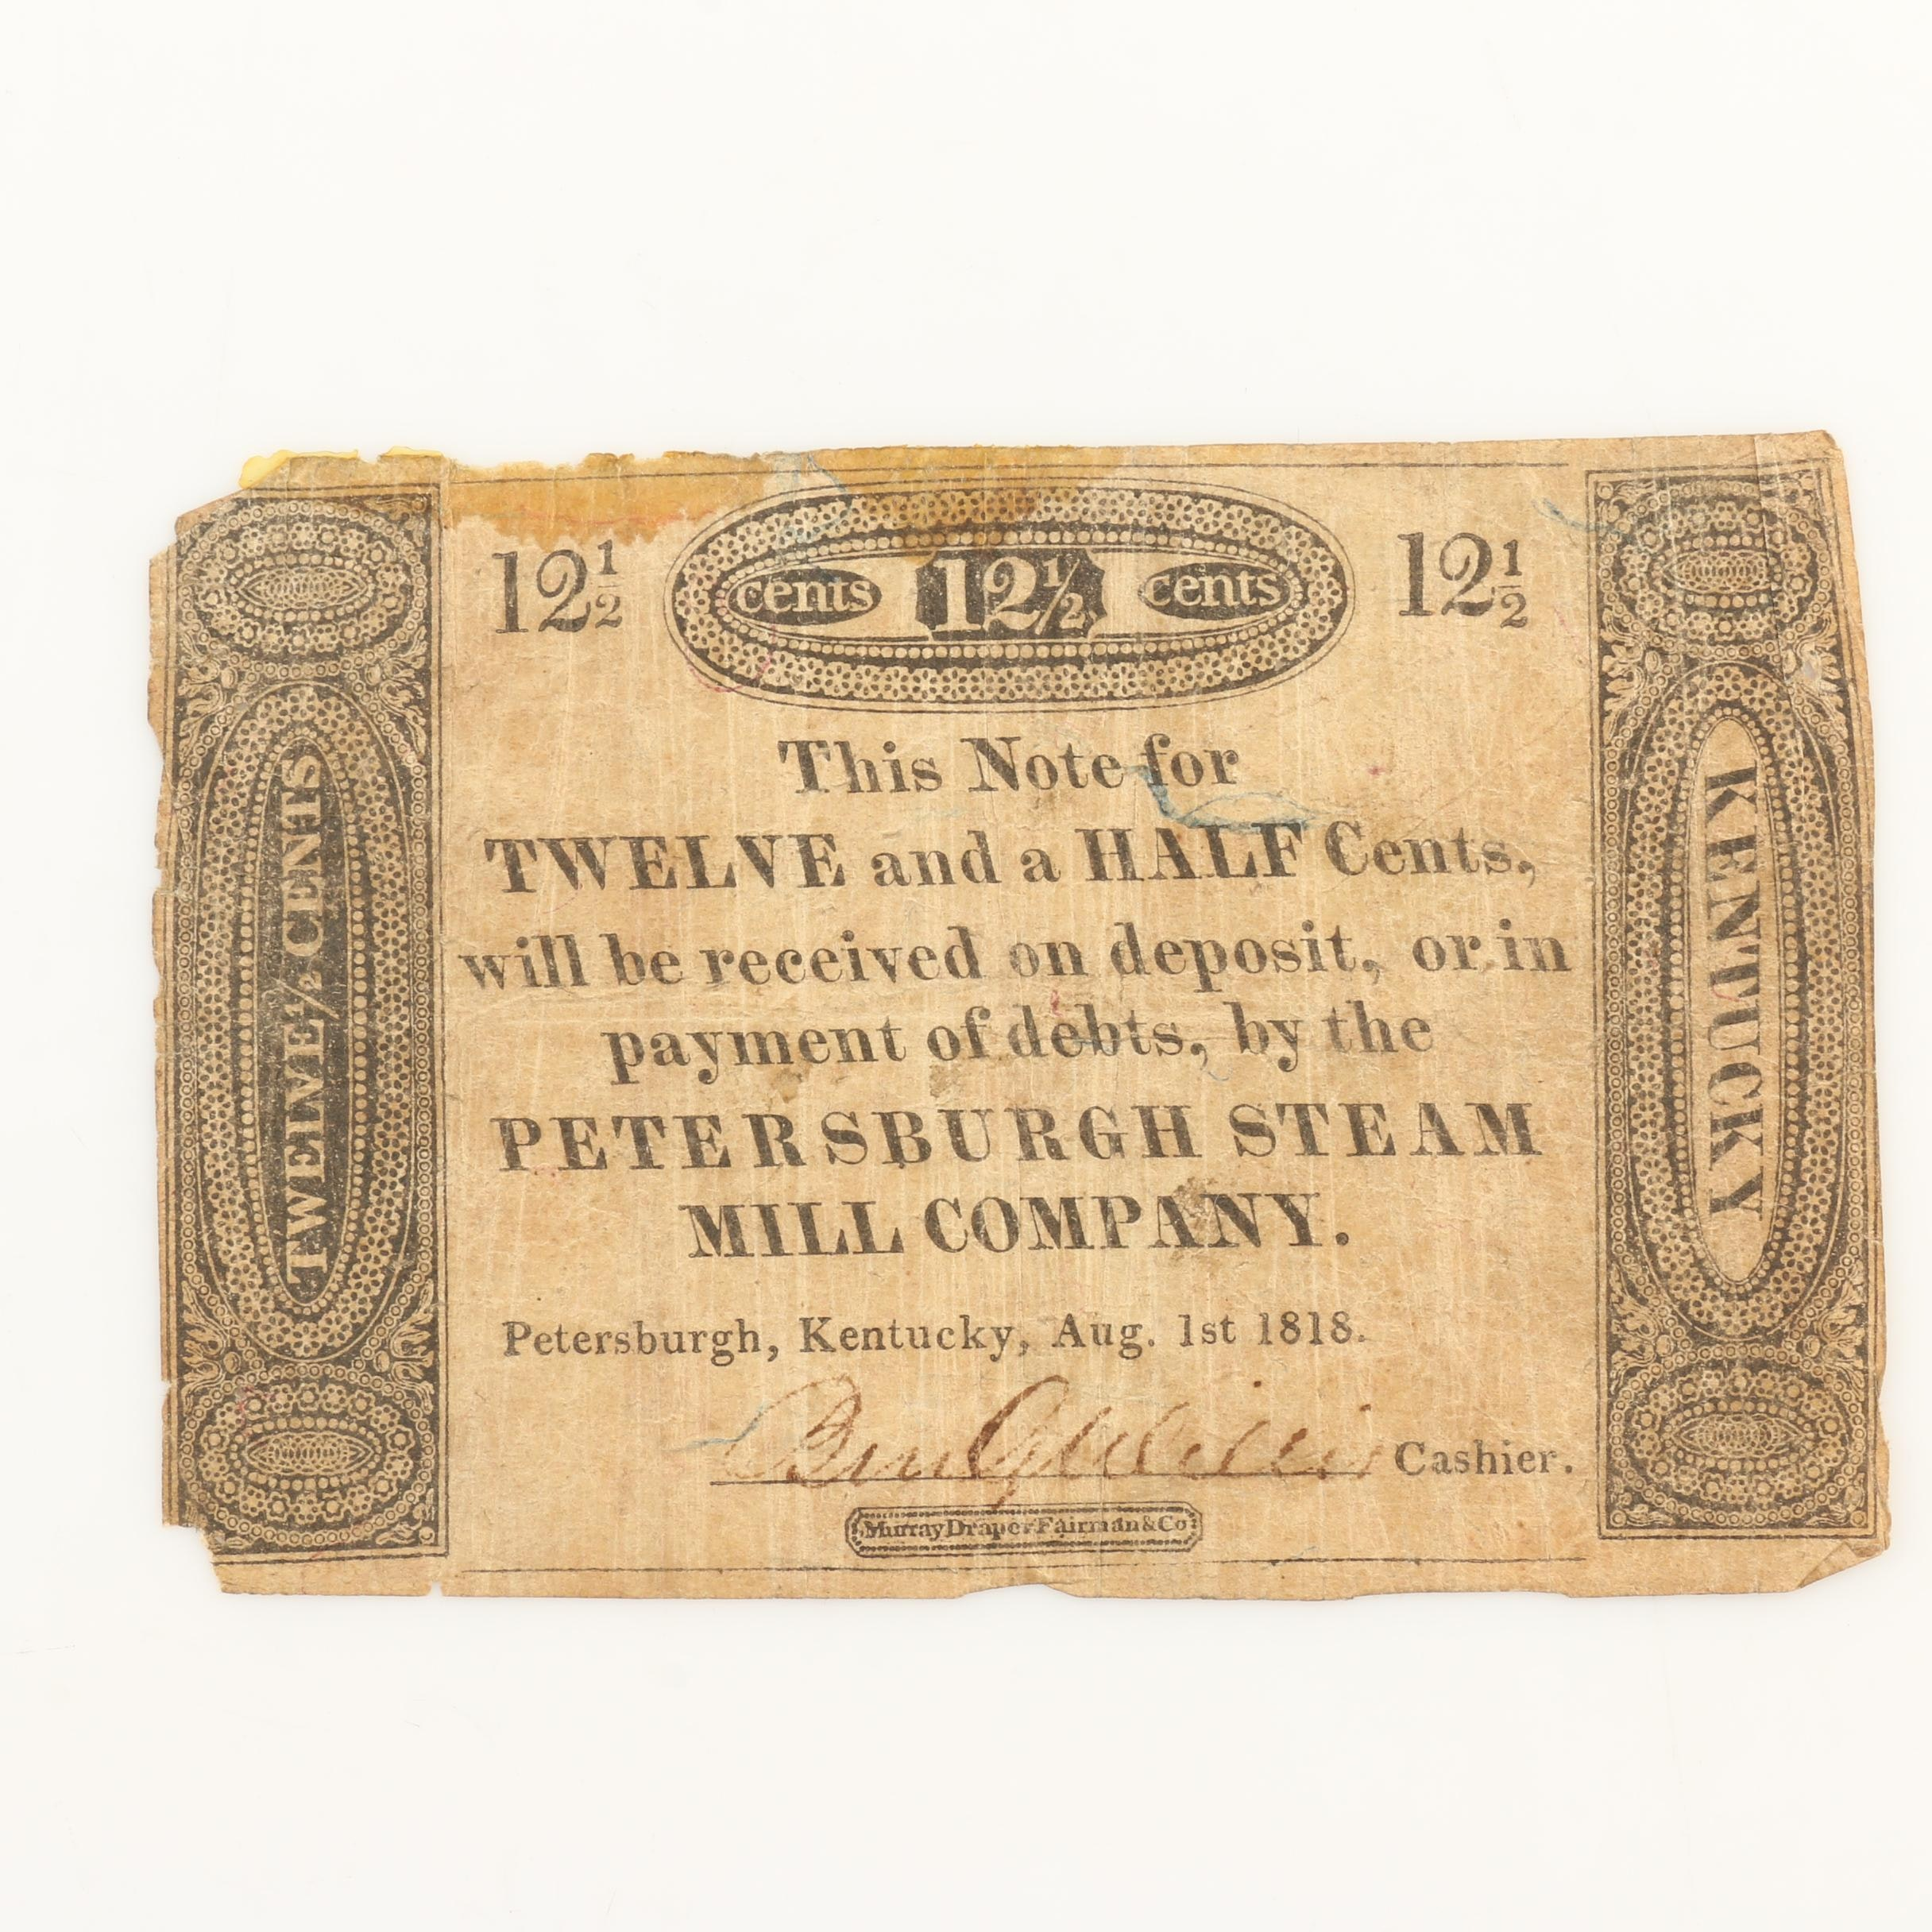 Privately Issued Obsolete Fractional Bank Note from 1818